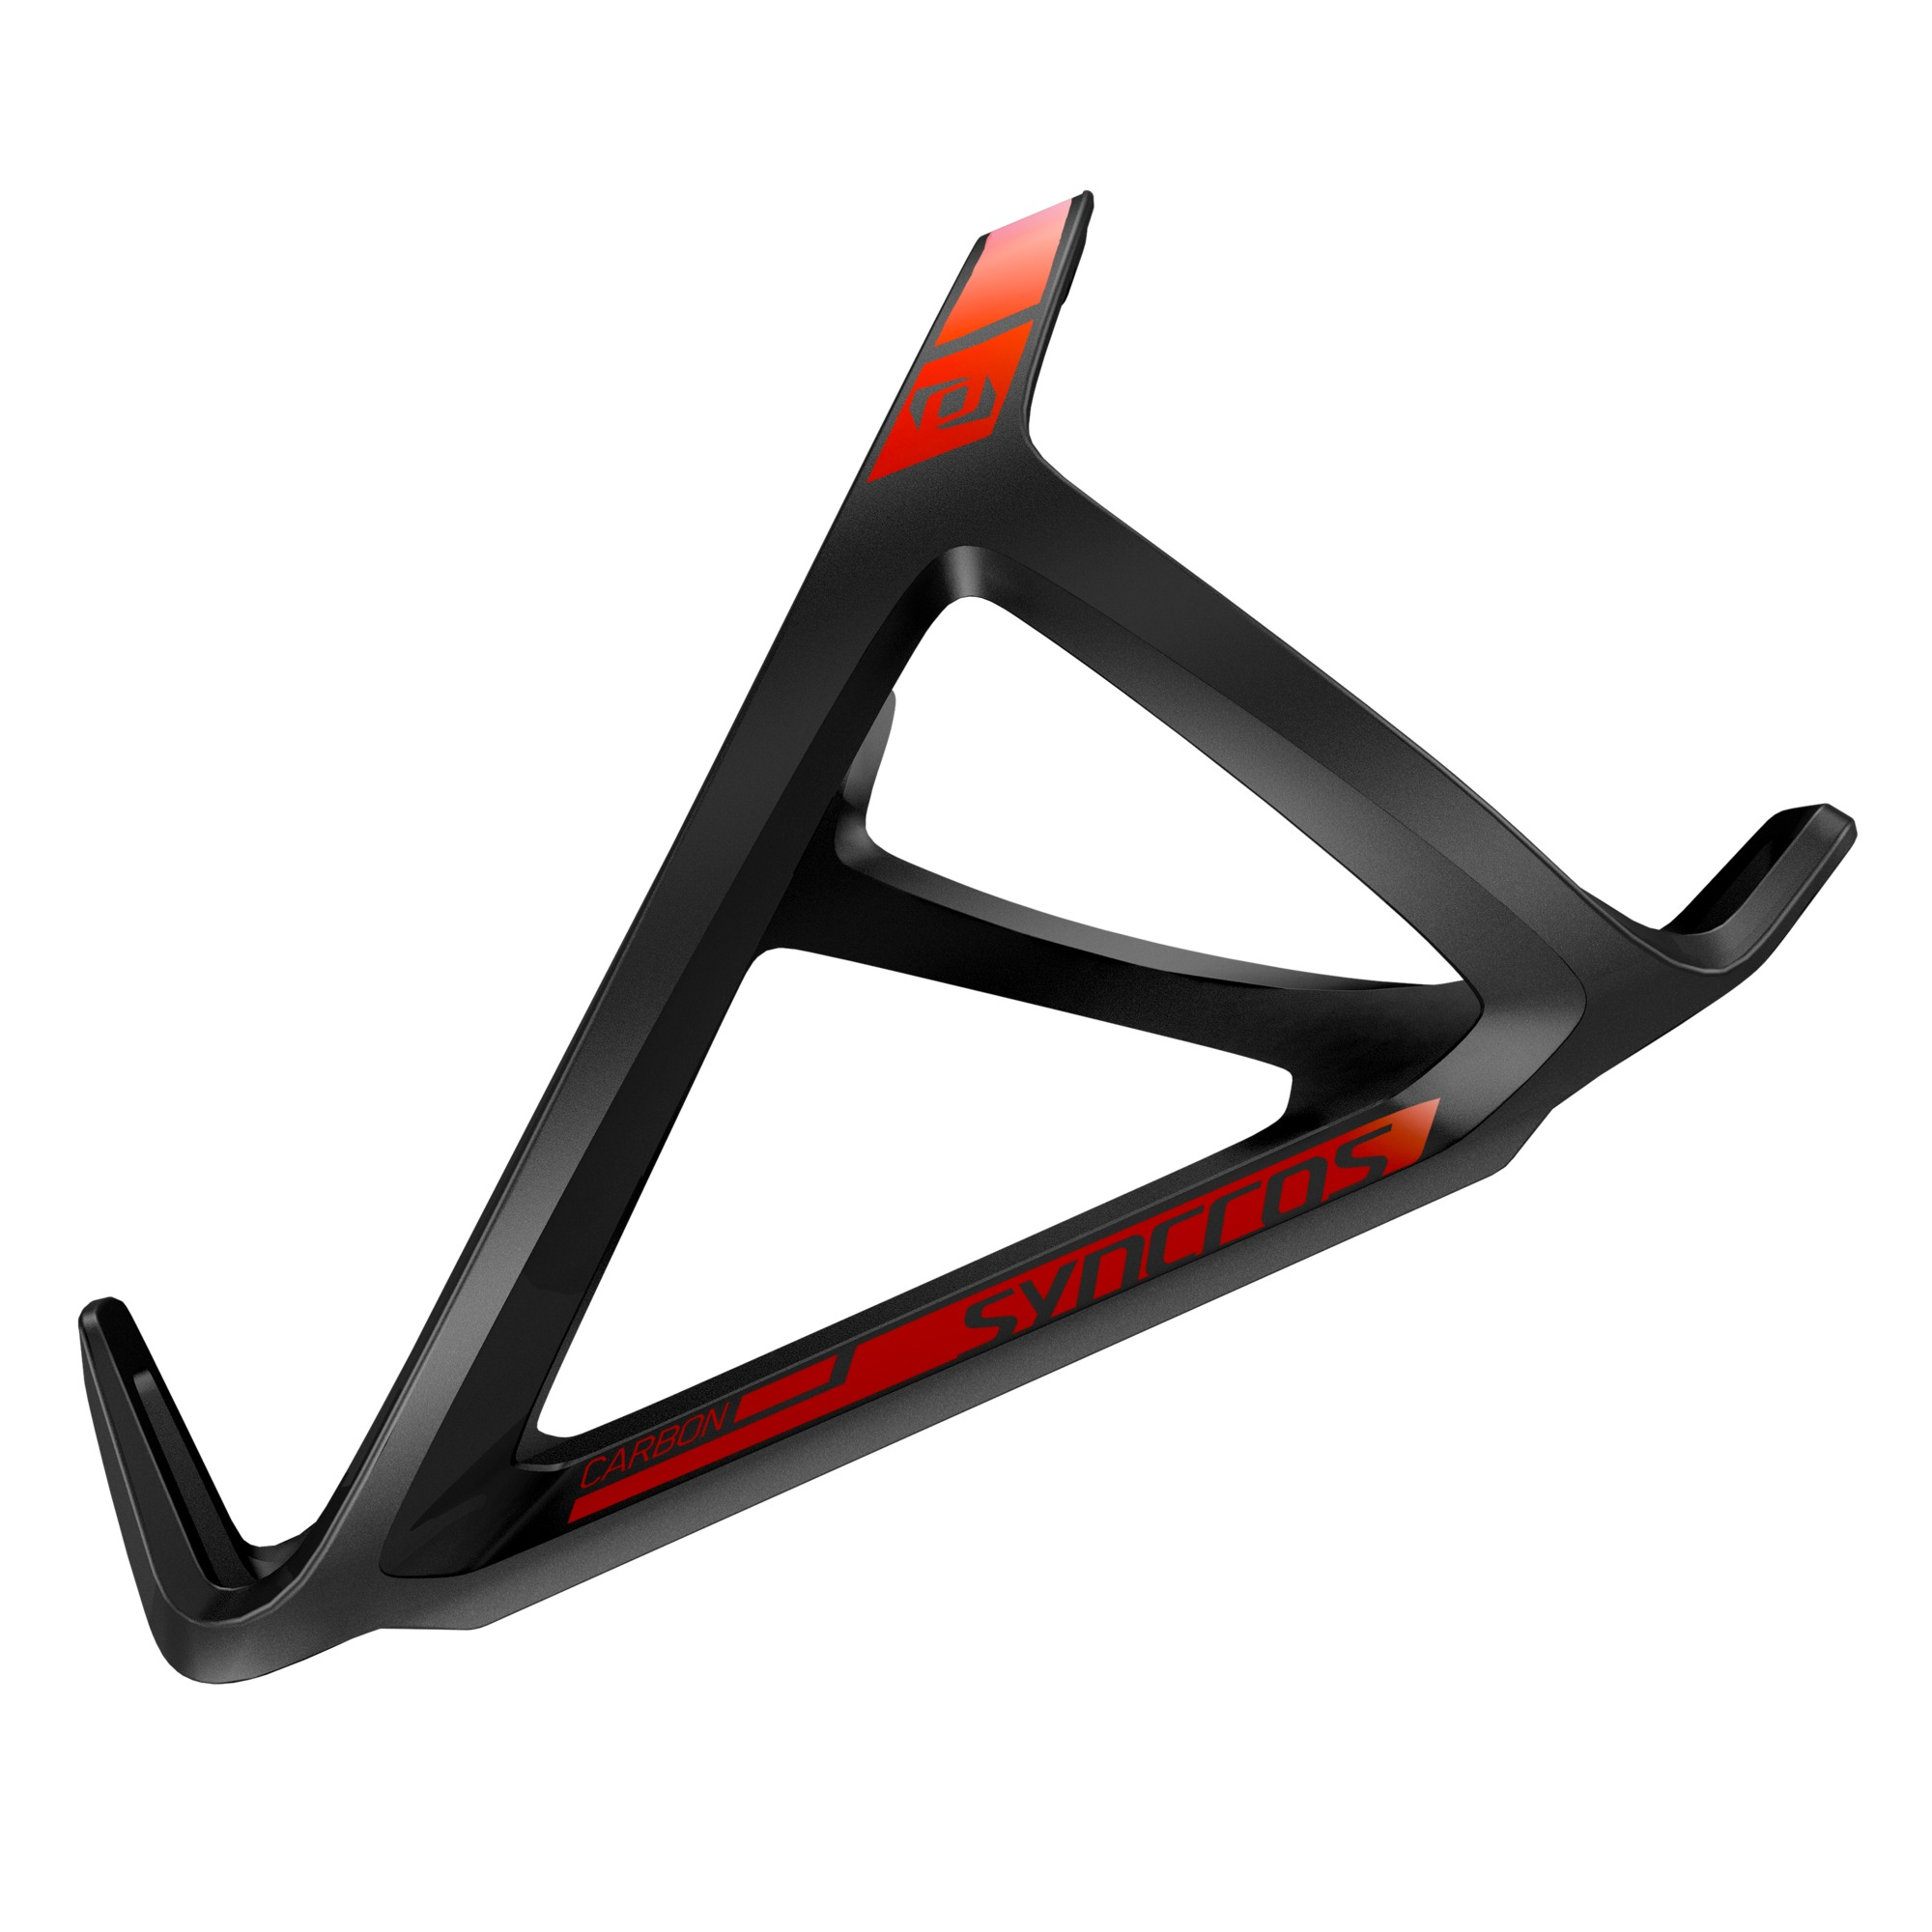 Syncros Tailor Cage 1.0 Bottle Cage - Left